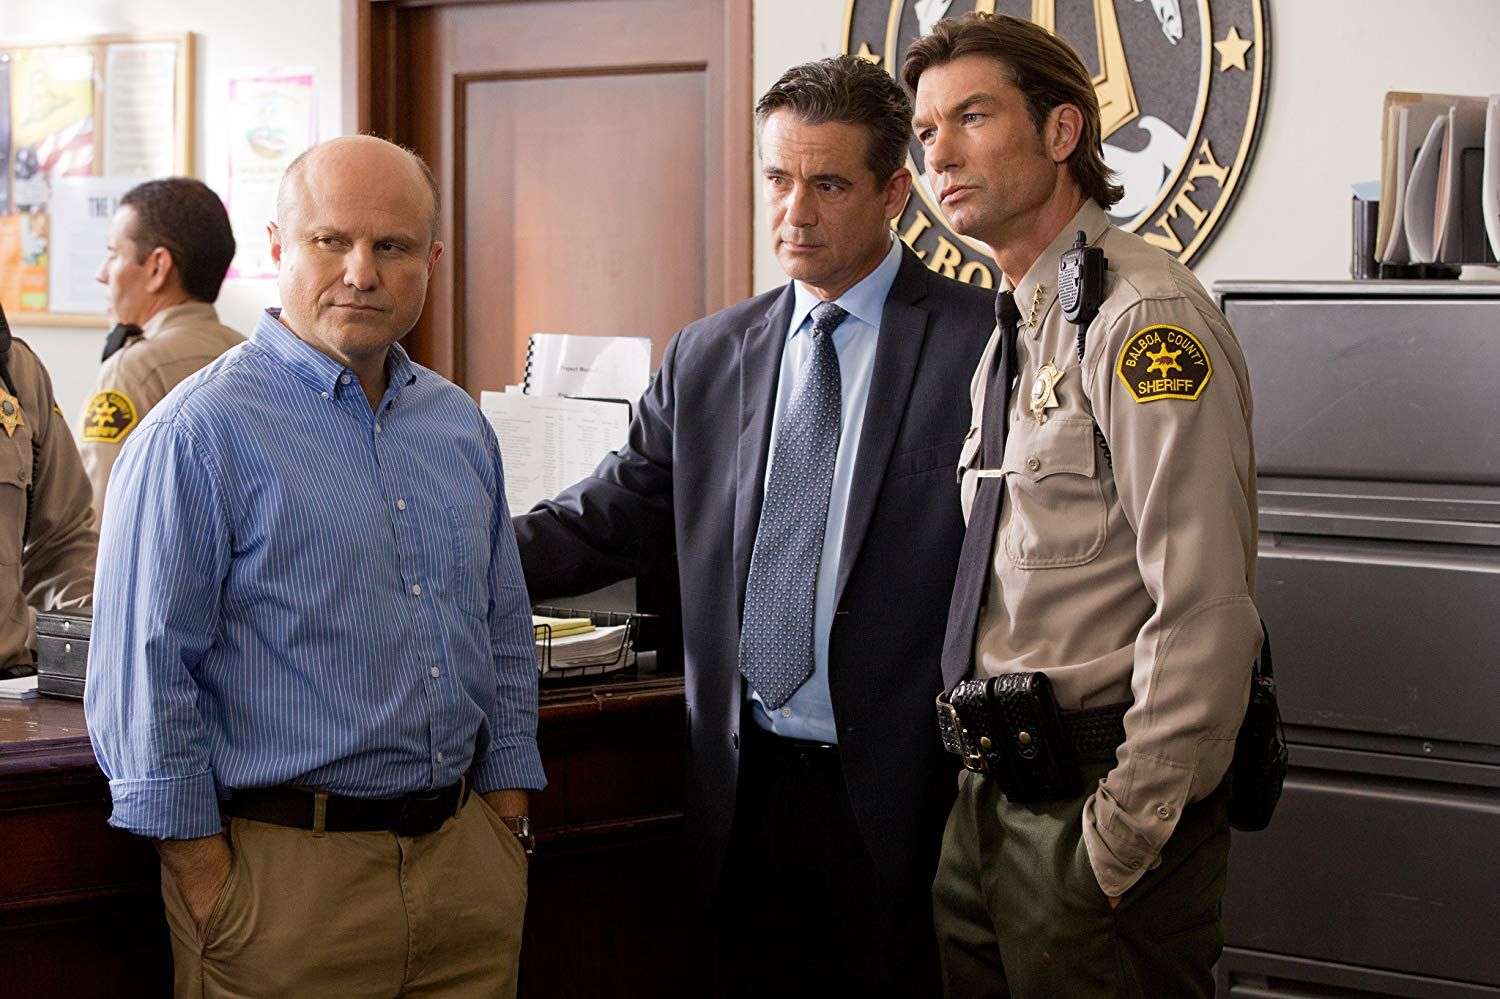 Keith Mars (Enirco Colantoni) with Cliff McCormack (Daran Norris) and Sheriff Dan Lamb (Jerry O'Connell).